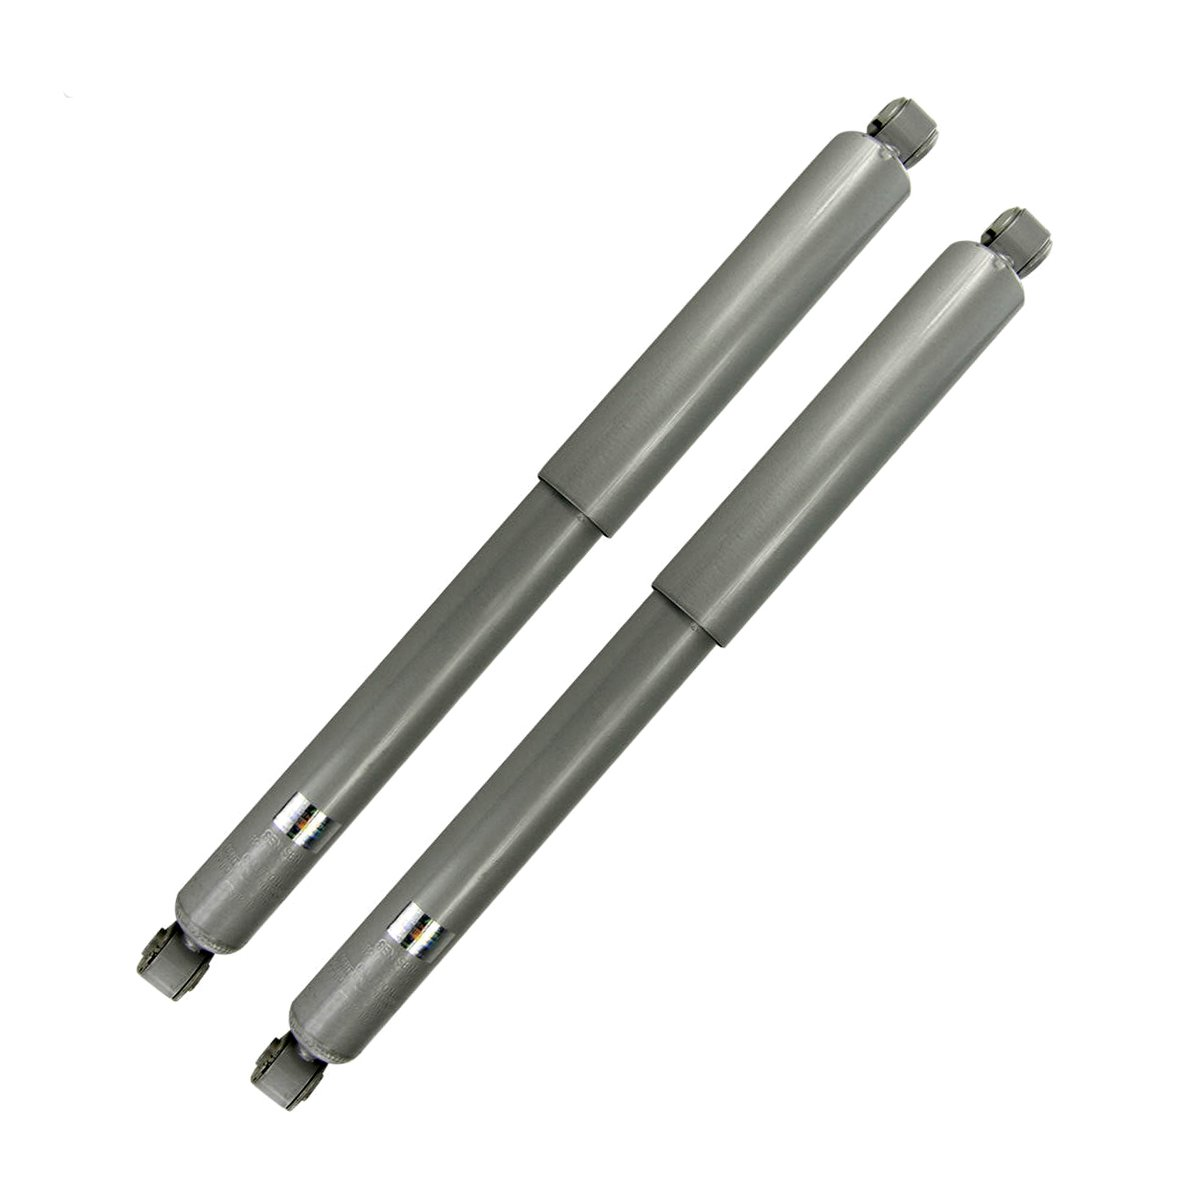 Pair 4x4 Driver /& Passenger Side 4x4 Models Rear Shock Absorber Set